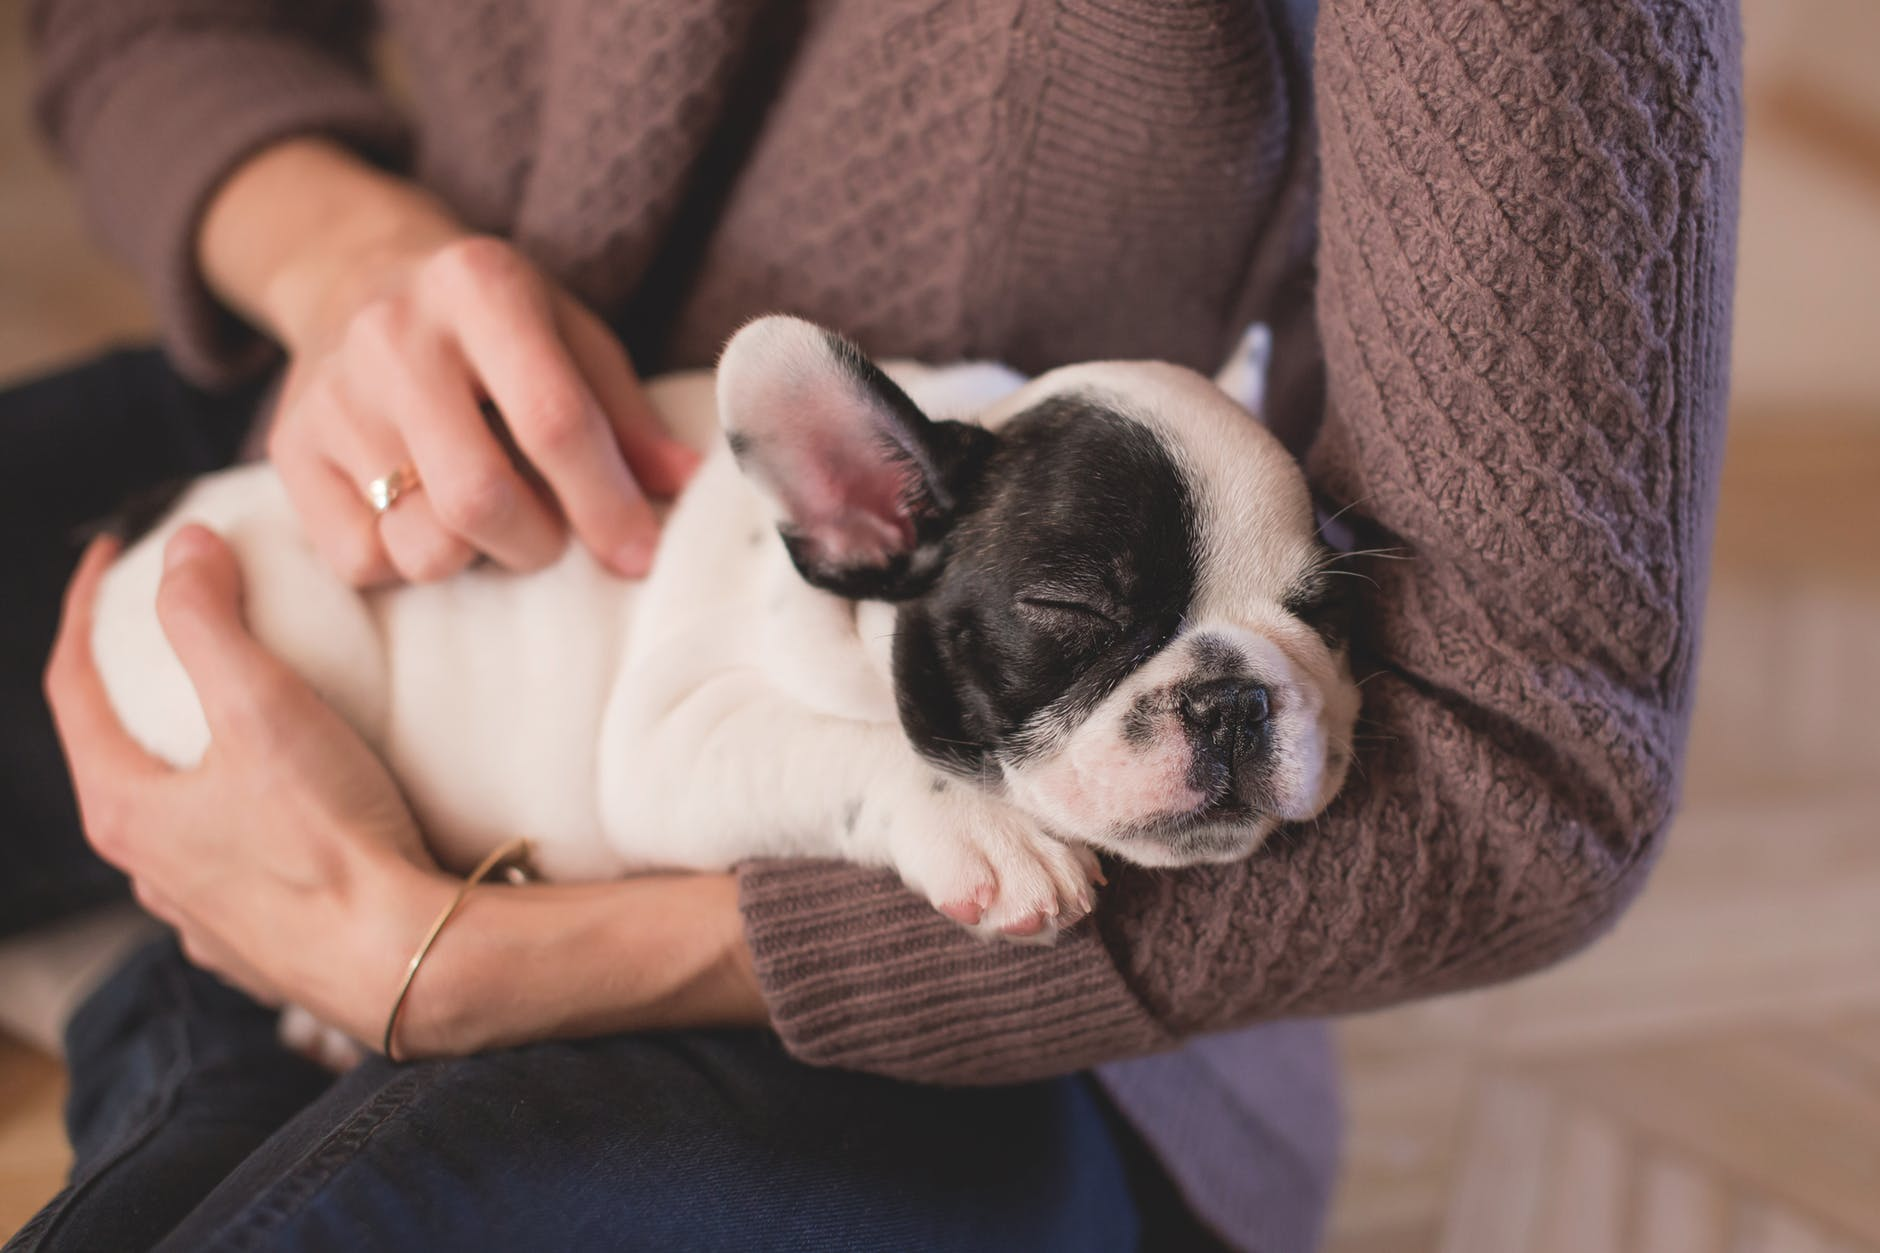 a woman holding and petting a black and white french bulldog puppy